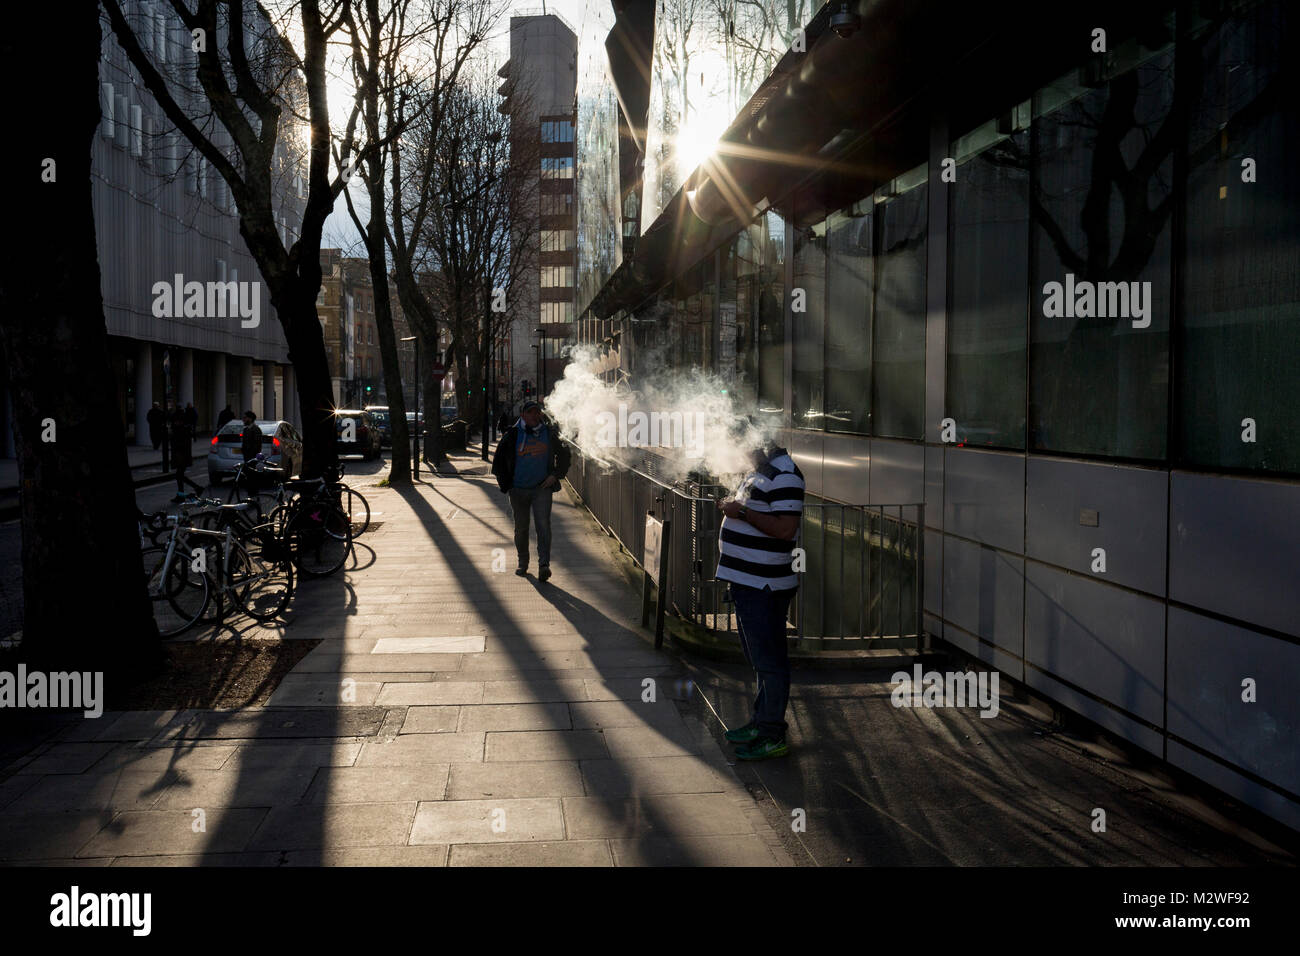 A vaper exhales a cloud of smoke in bright winter sunlight, on a central London street, on 6th February 2018, in - Stock Image